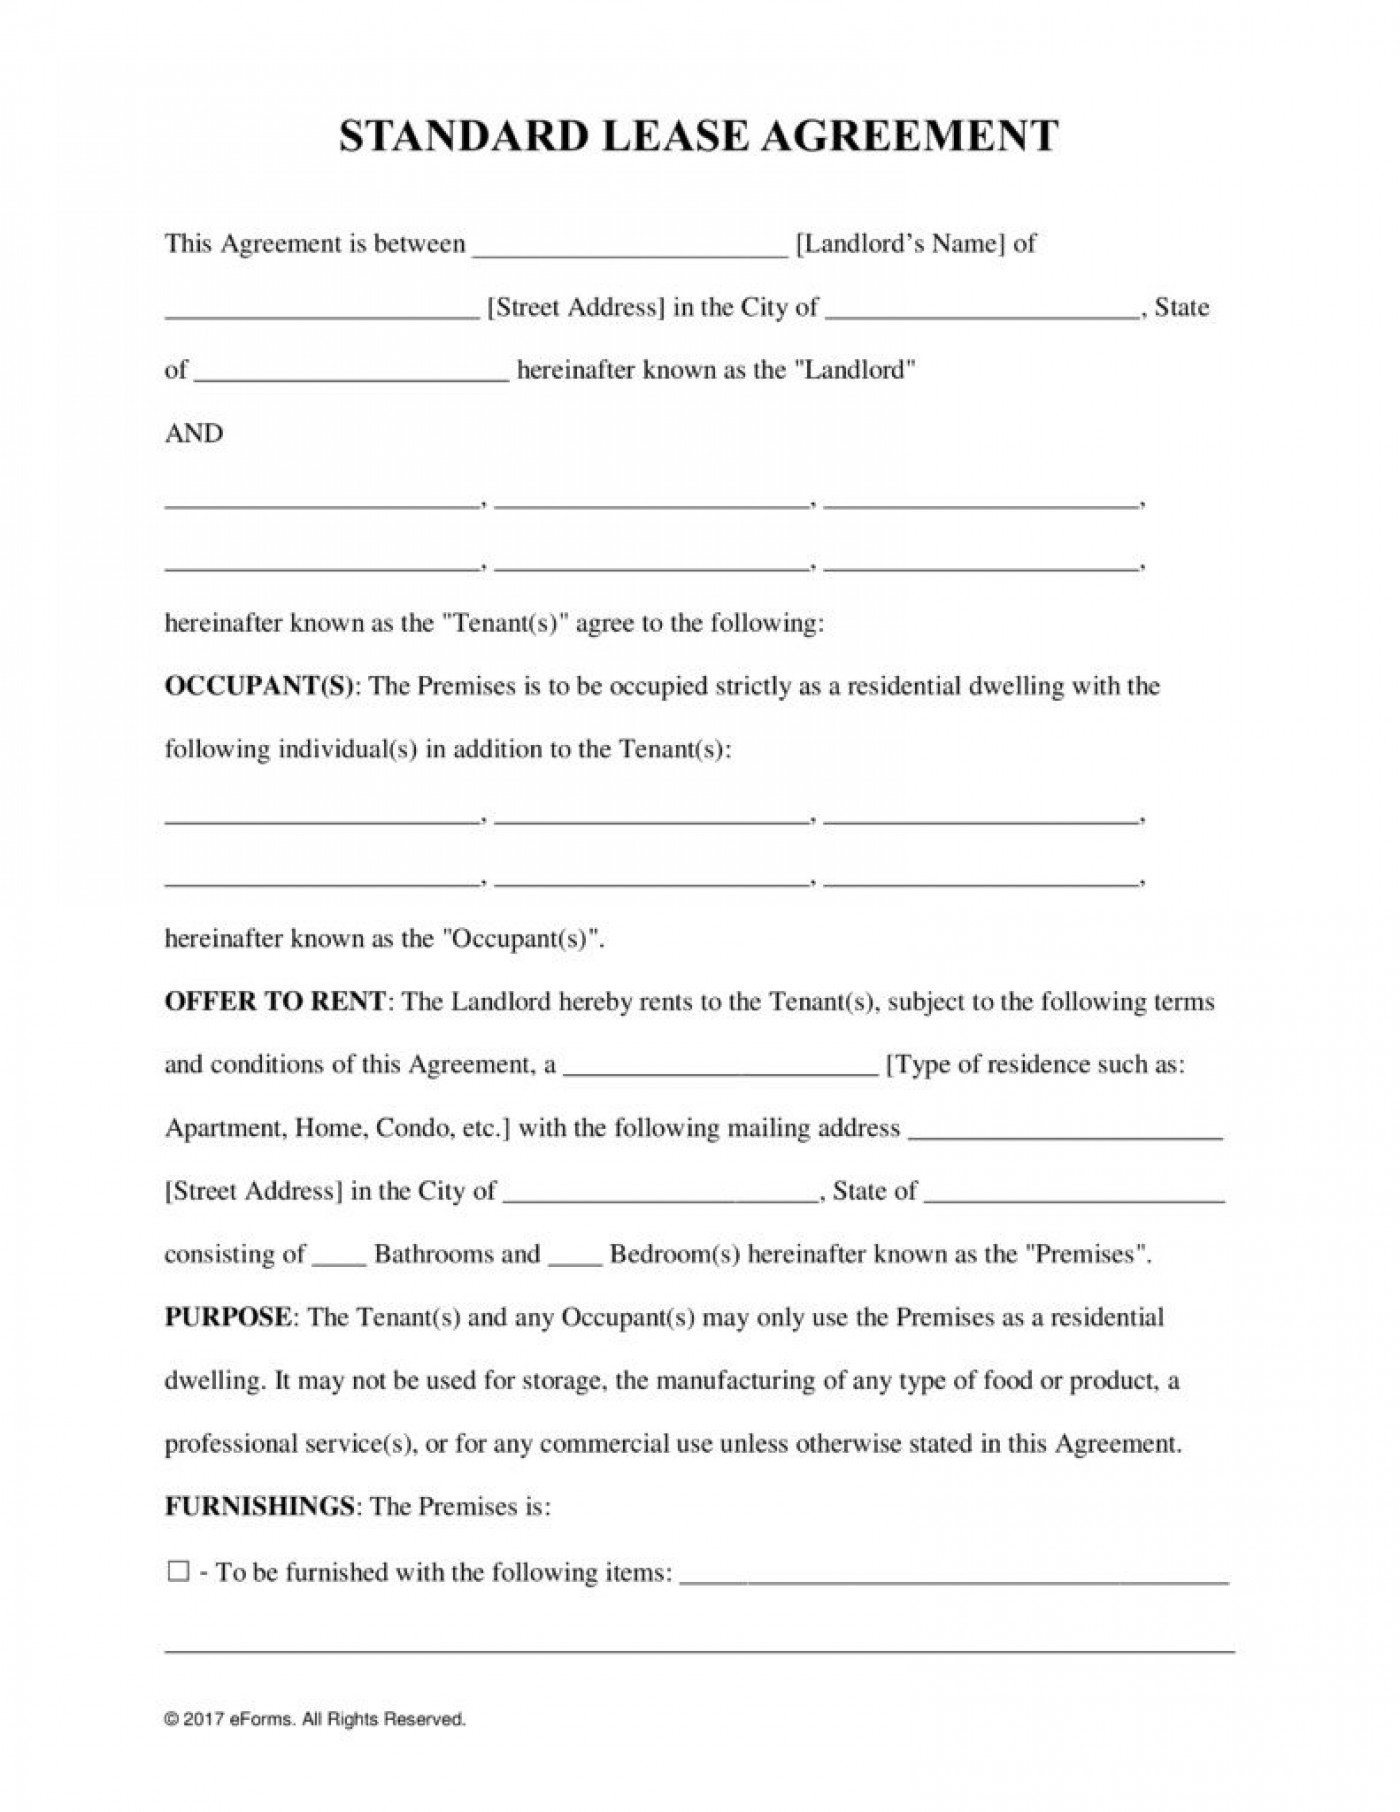 001 Singular Free Lease Agreement Template Word Photo  Commercial Residential Rental South Africa1400